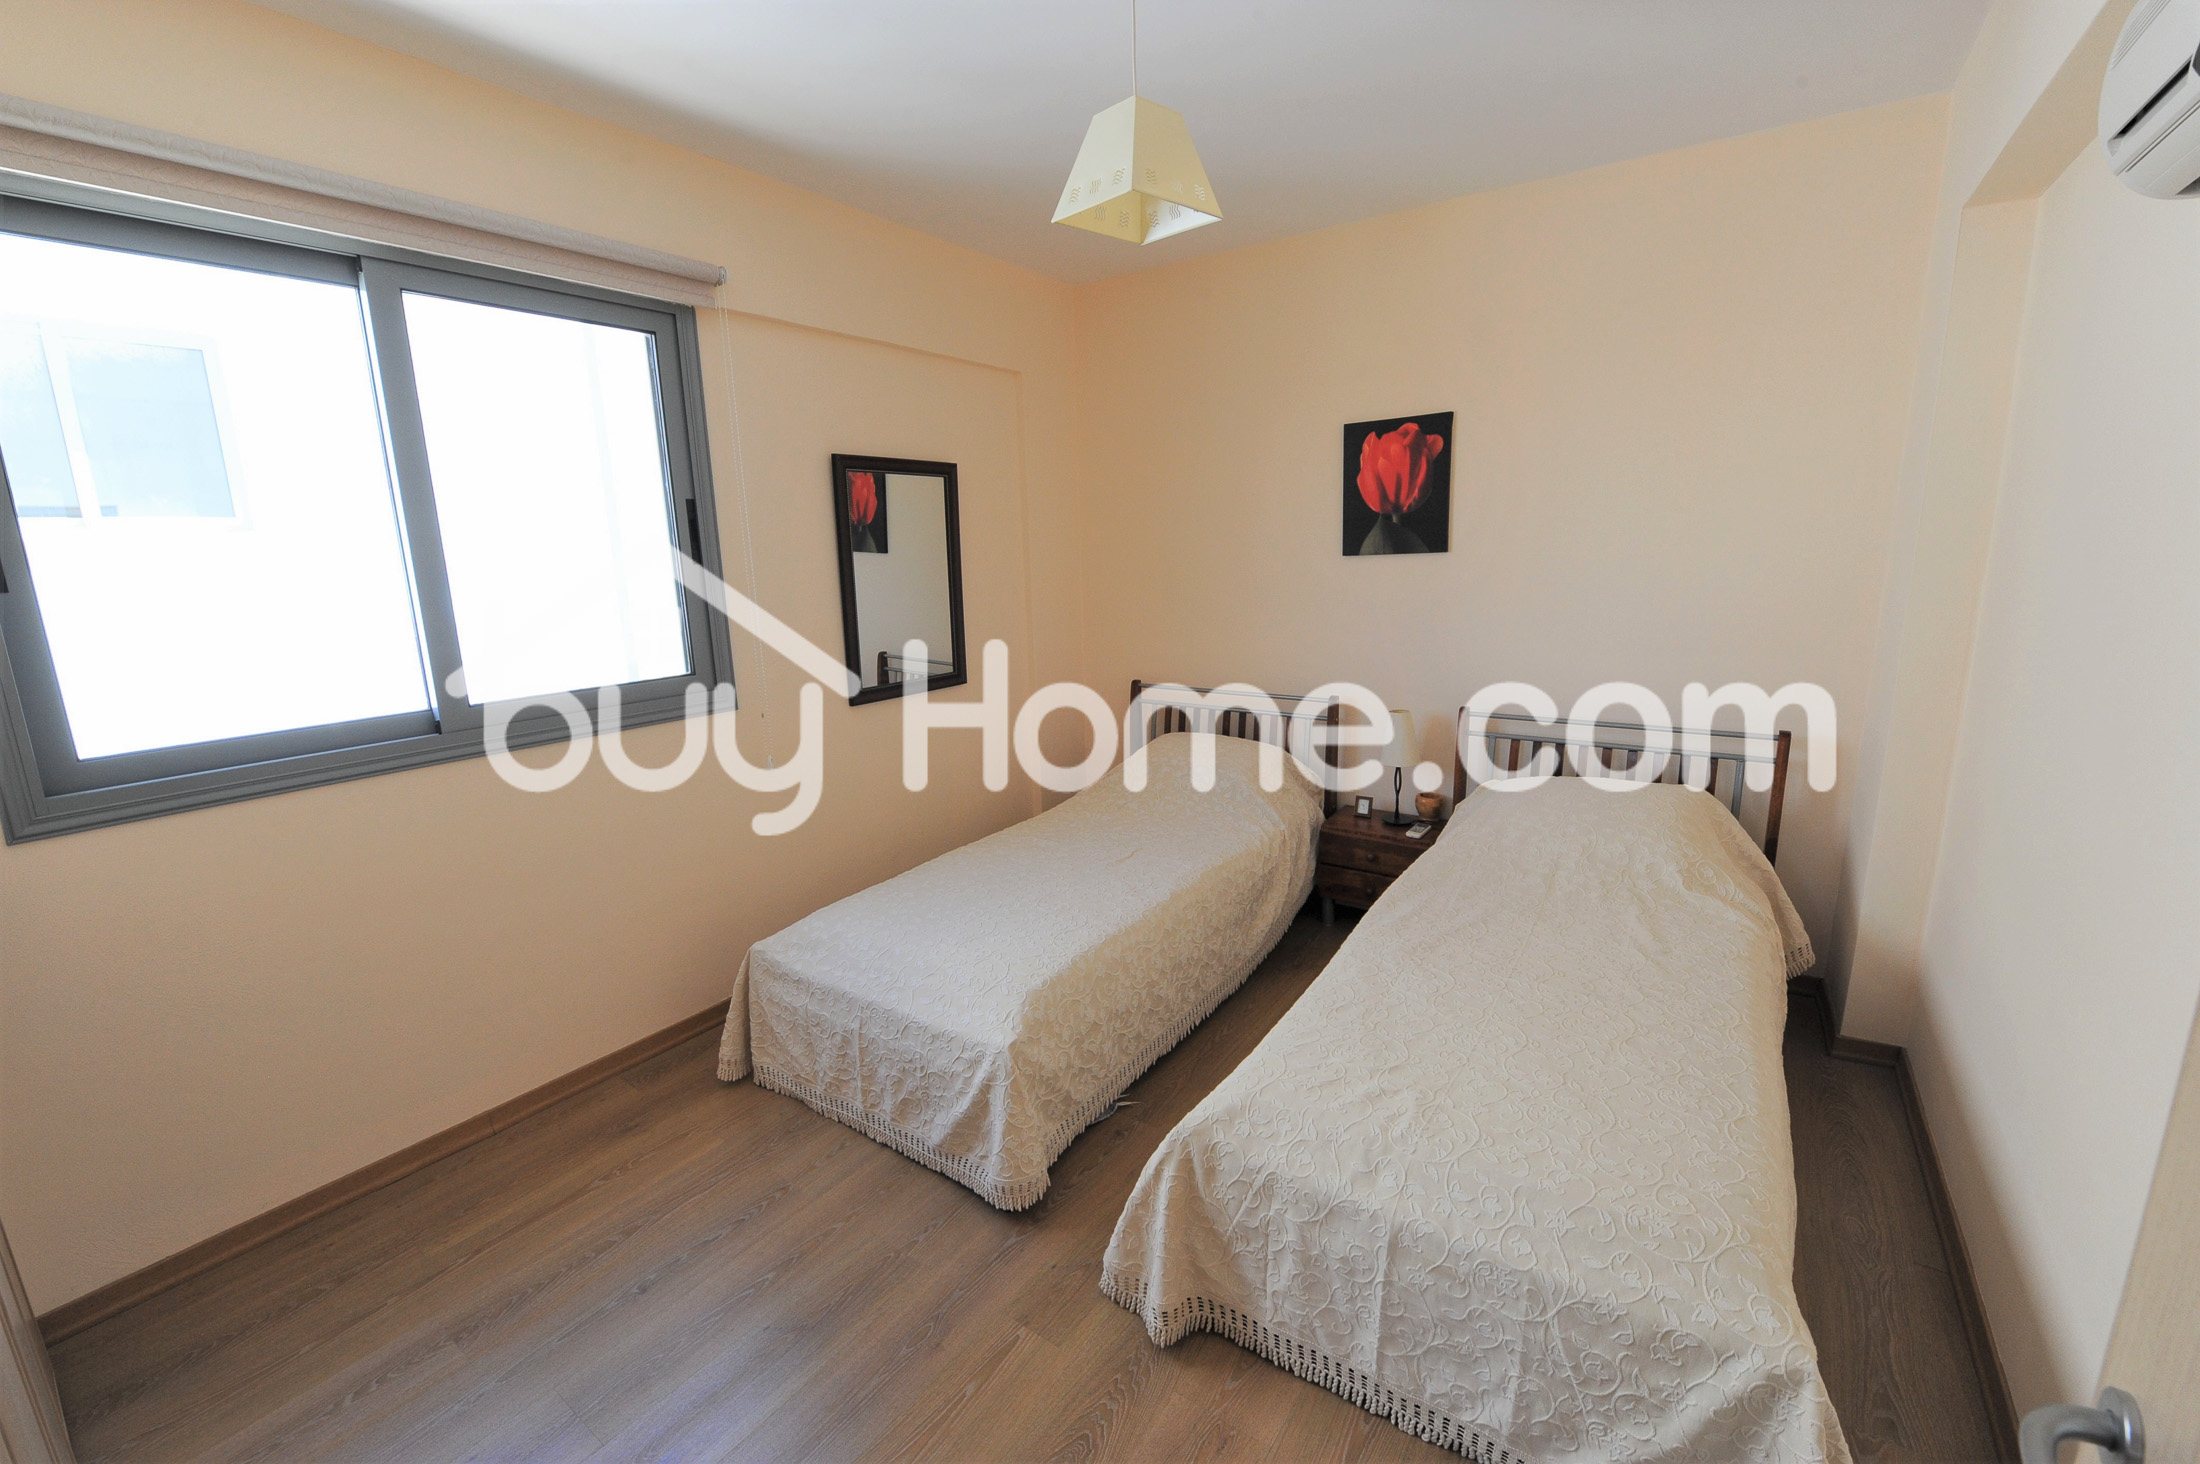 2 Bedroom apartment | BuyHome